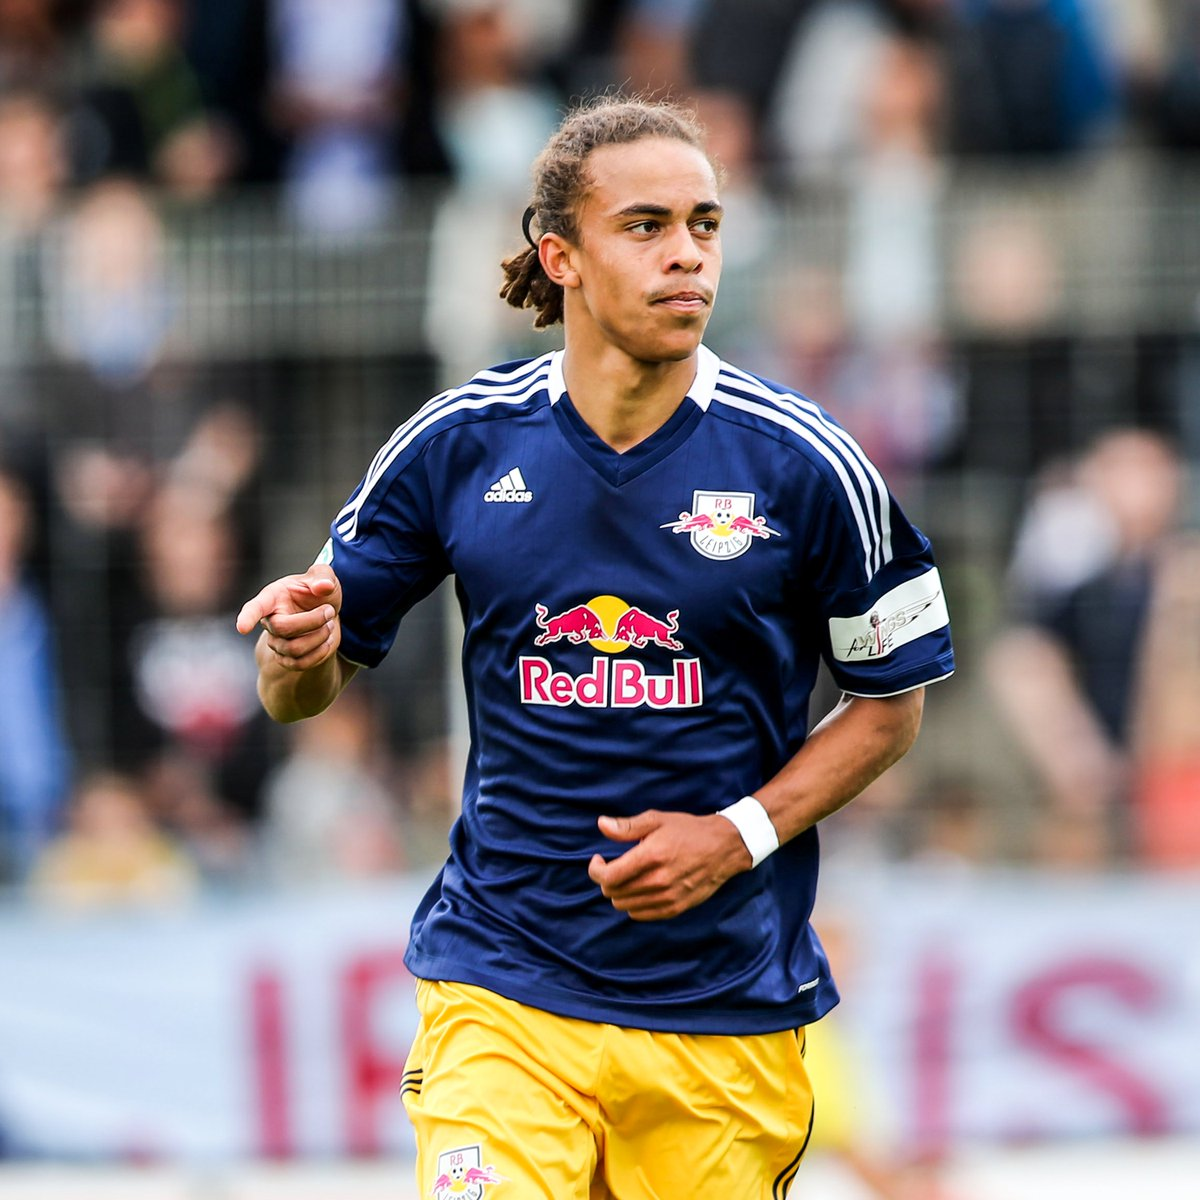 B R Football On Twitter In 2013 Yussuf Poulsen Debuted For Rb Leipzig In The German Third Division Today The 26 Year Old Striker Will Captain The Club In Their First Champions League Semi Final